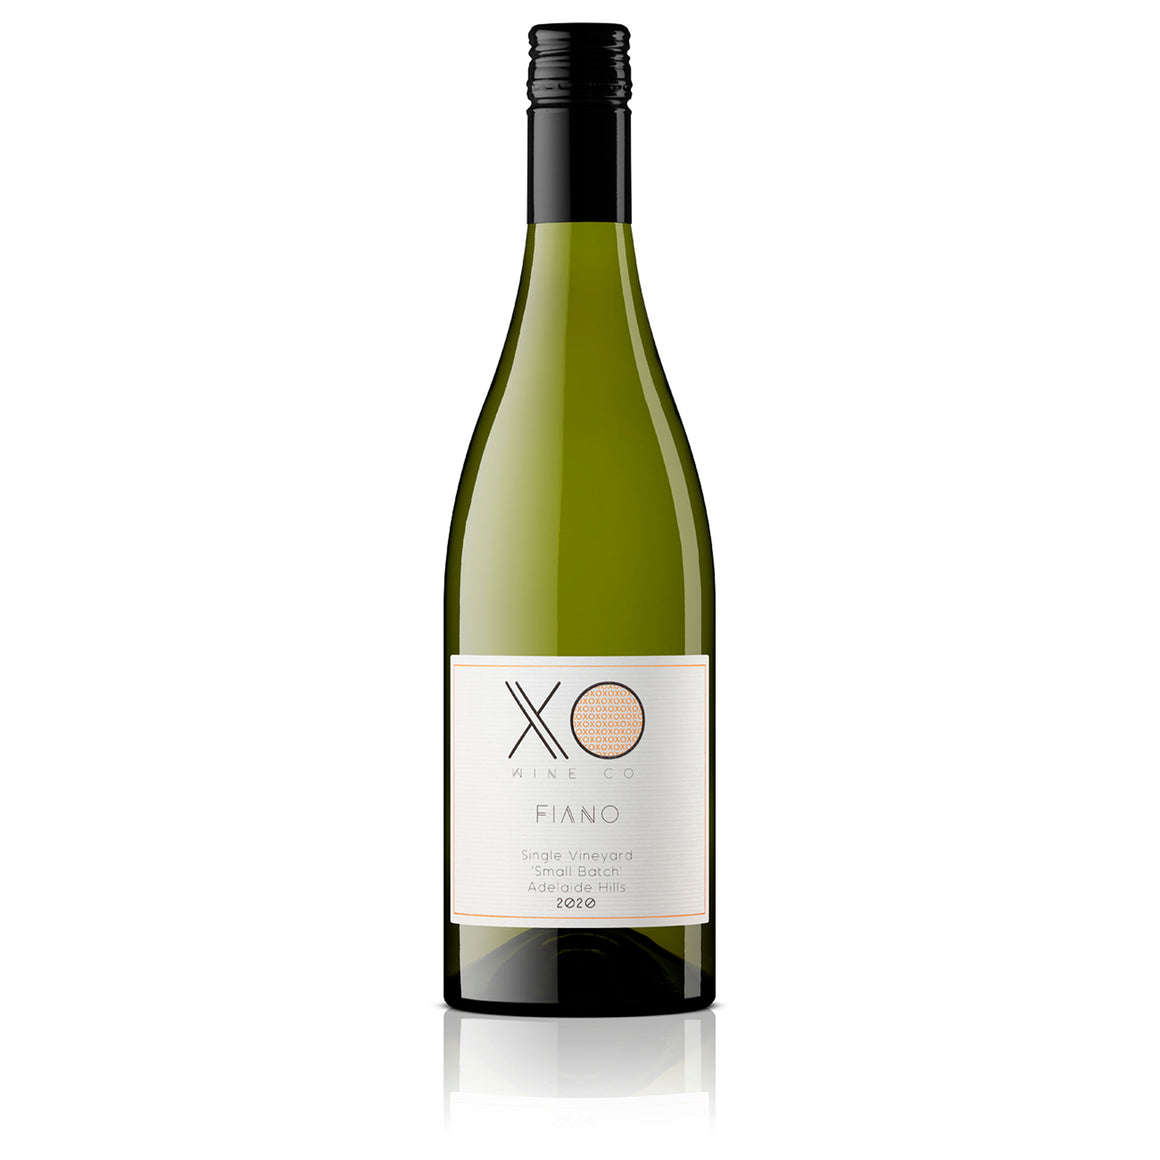 2020 XO Wine Co Fiano